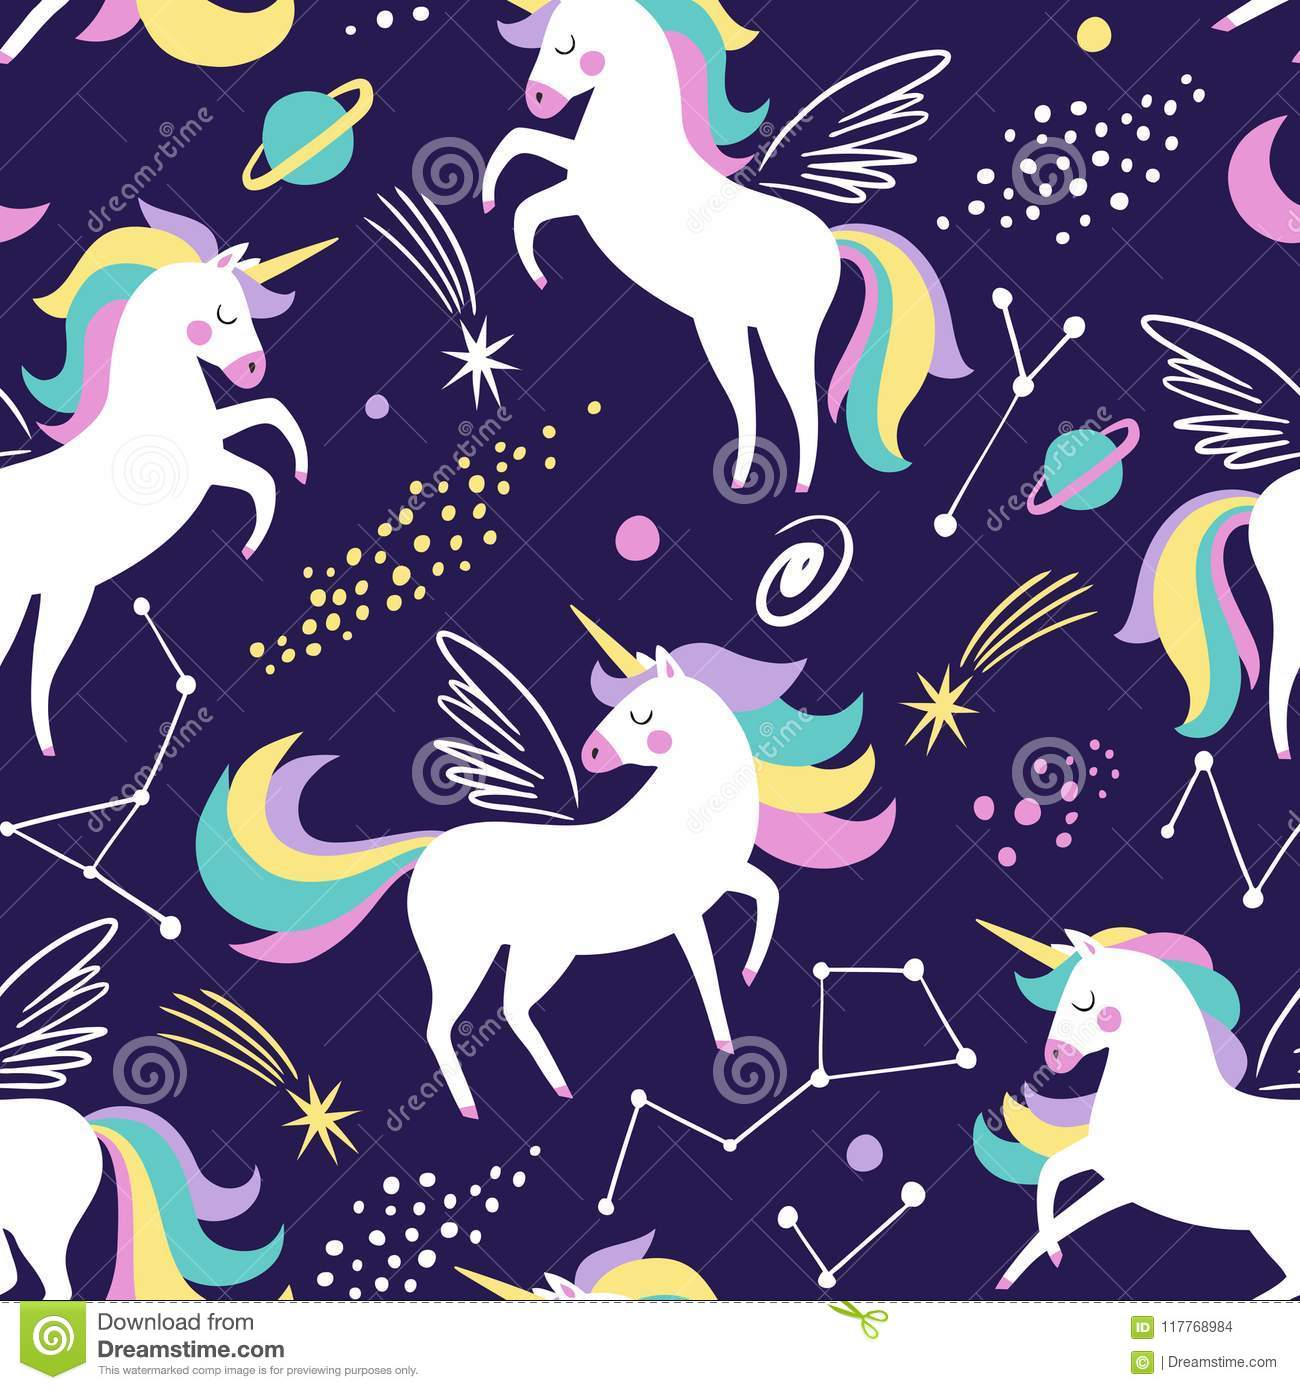 Hand drawn seamless vector pattern with cute unicorns, stars and planet.